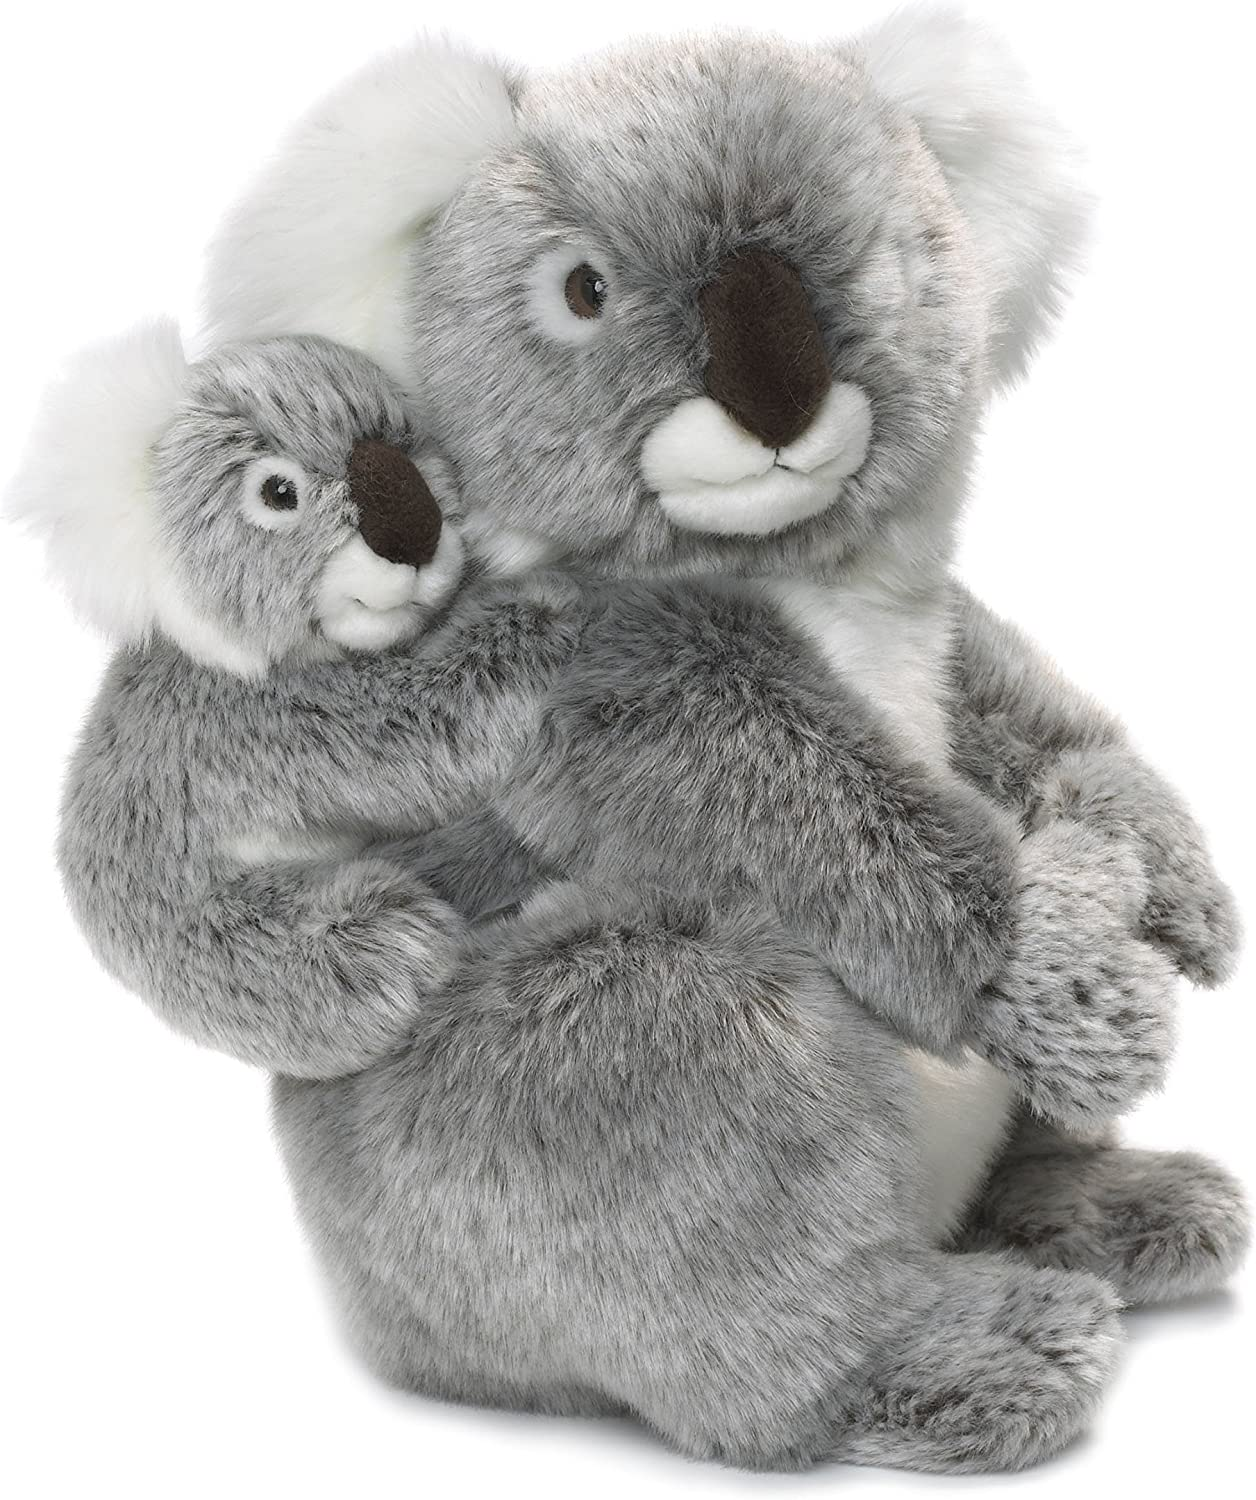 WWF Koala Bear plush stuffed animal soft toy MOTHER AND BABY